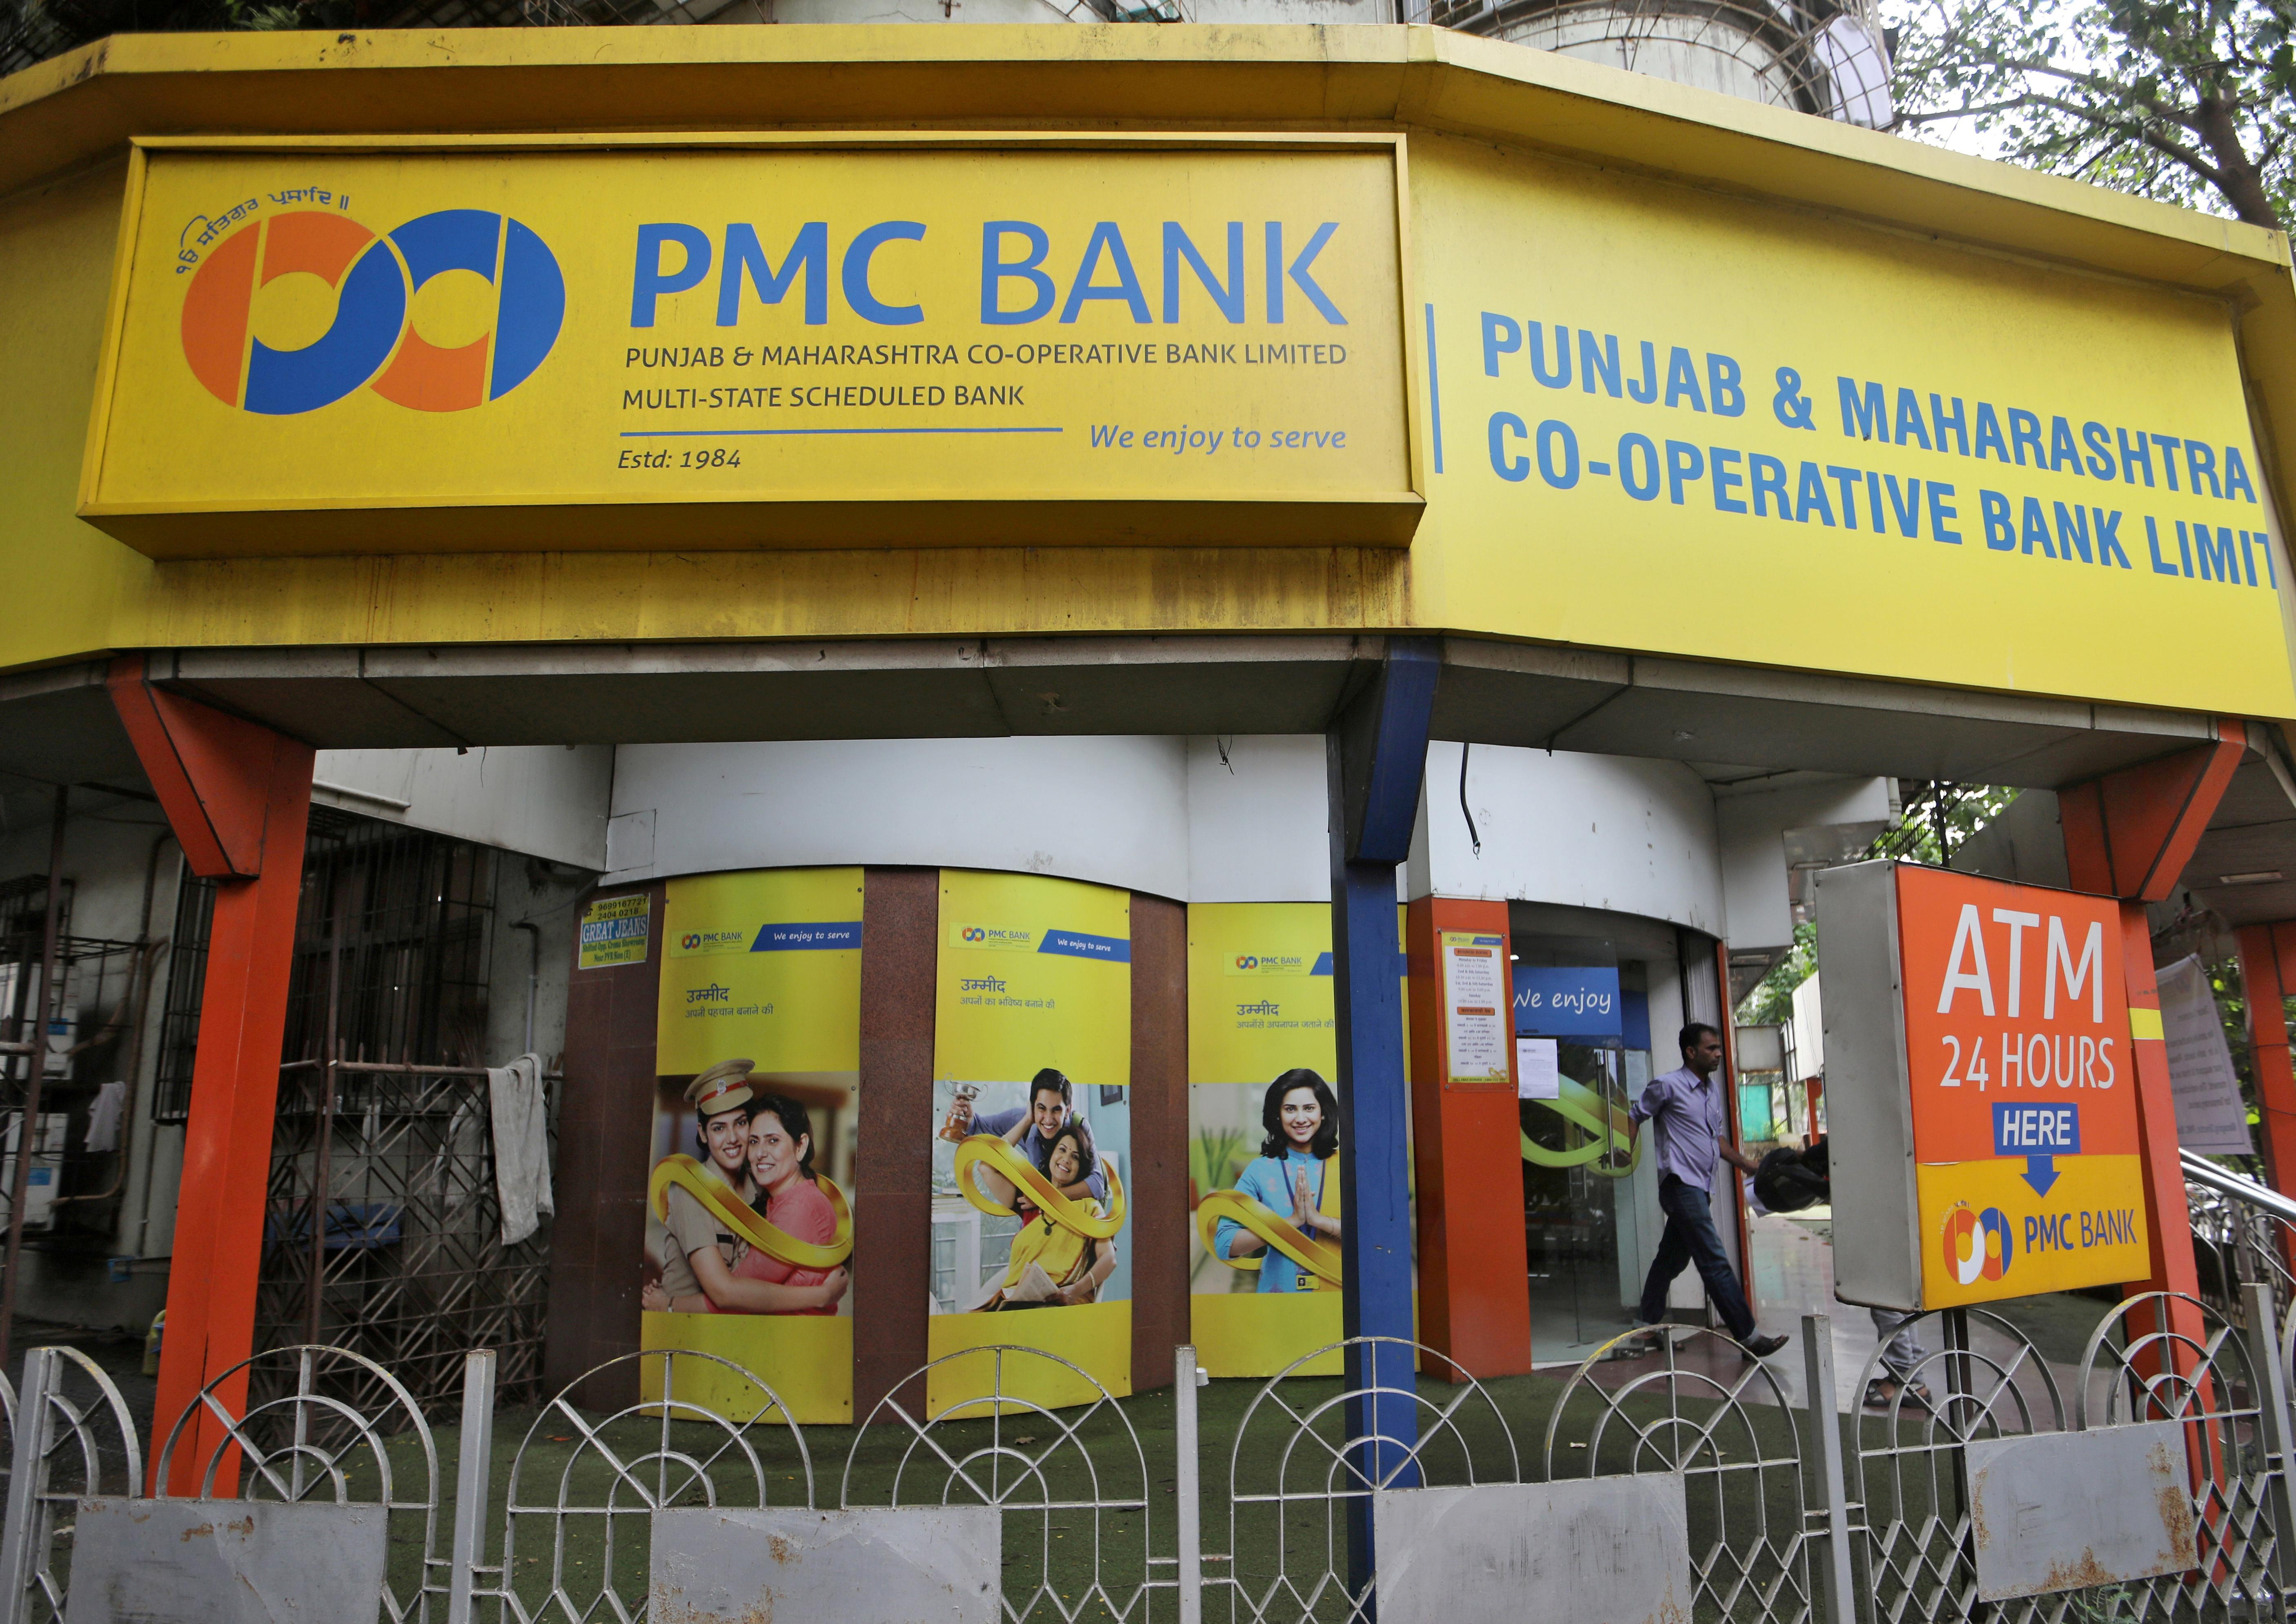 Indian court jails former MD of PMC Bank as fraud probe deepens